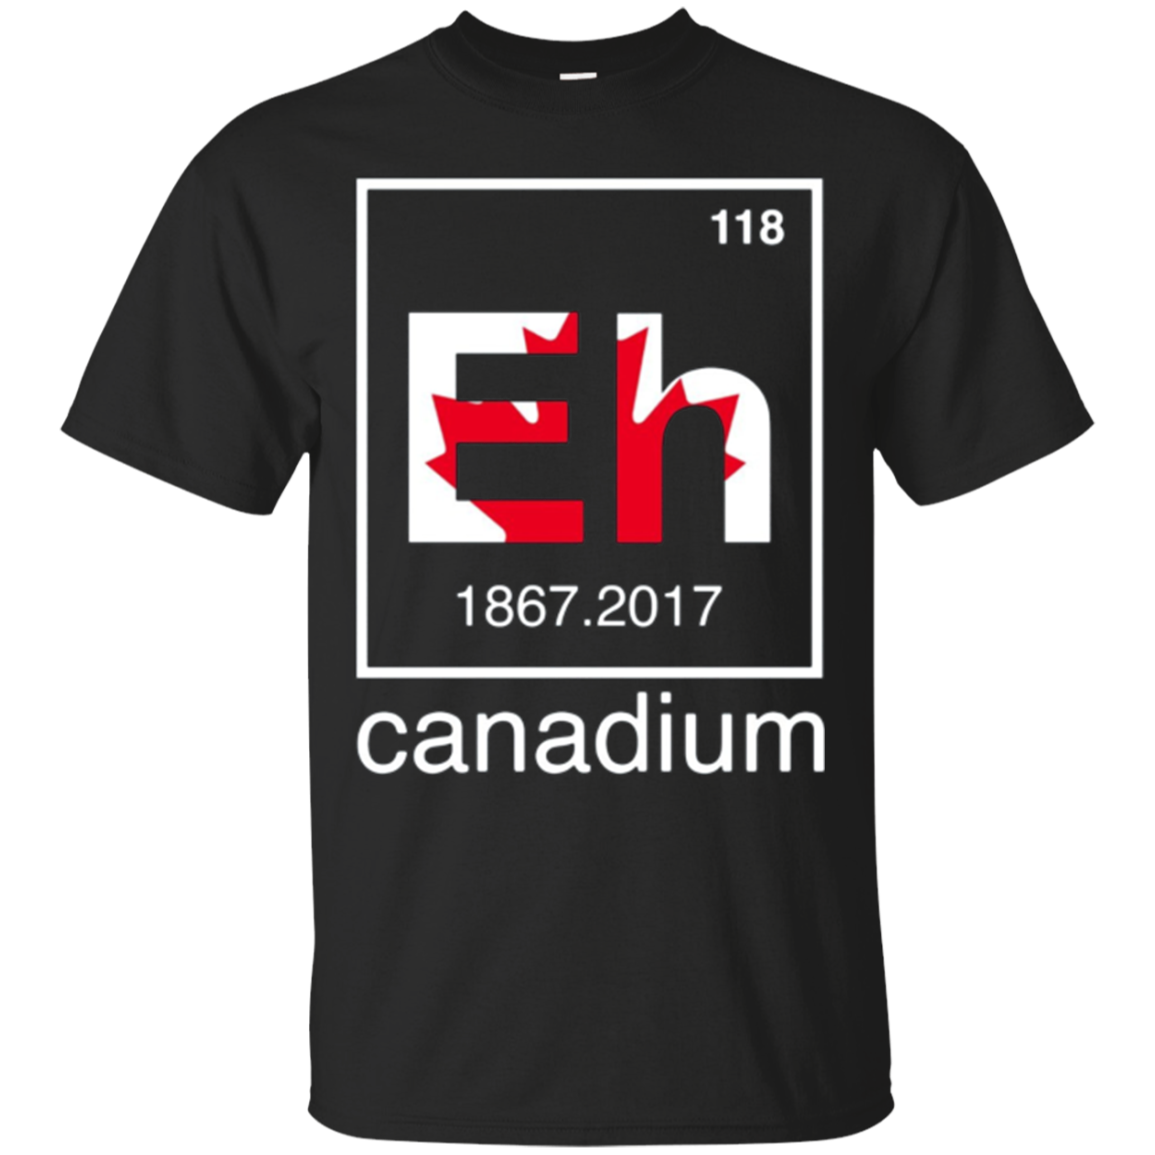 Funny Canadian Tees - Canada Element Eh - 150 years T-Shirt